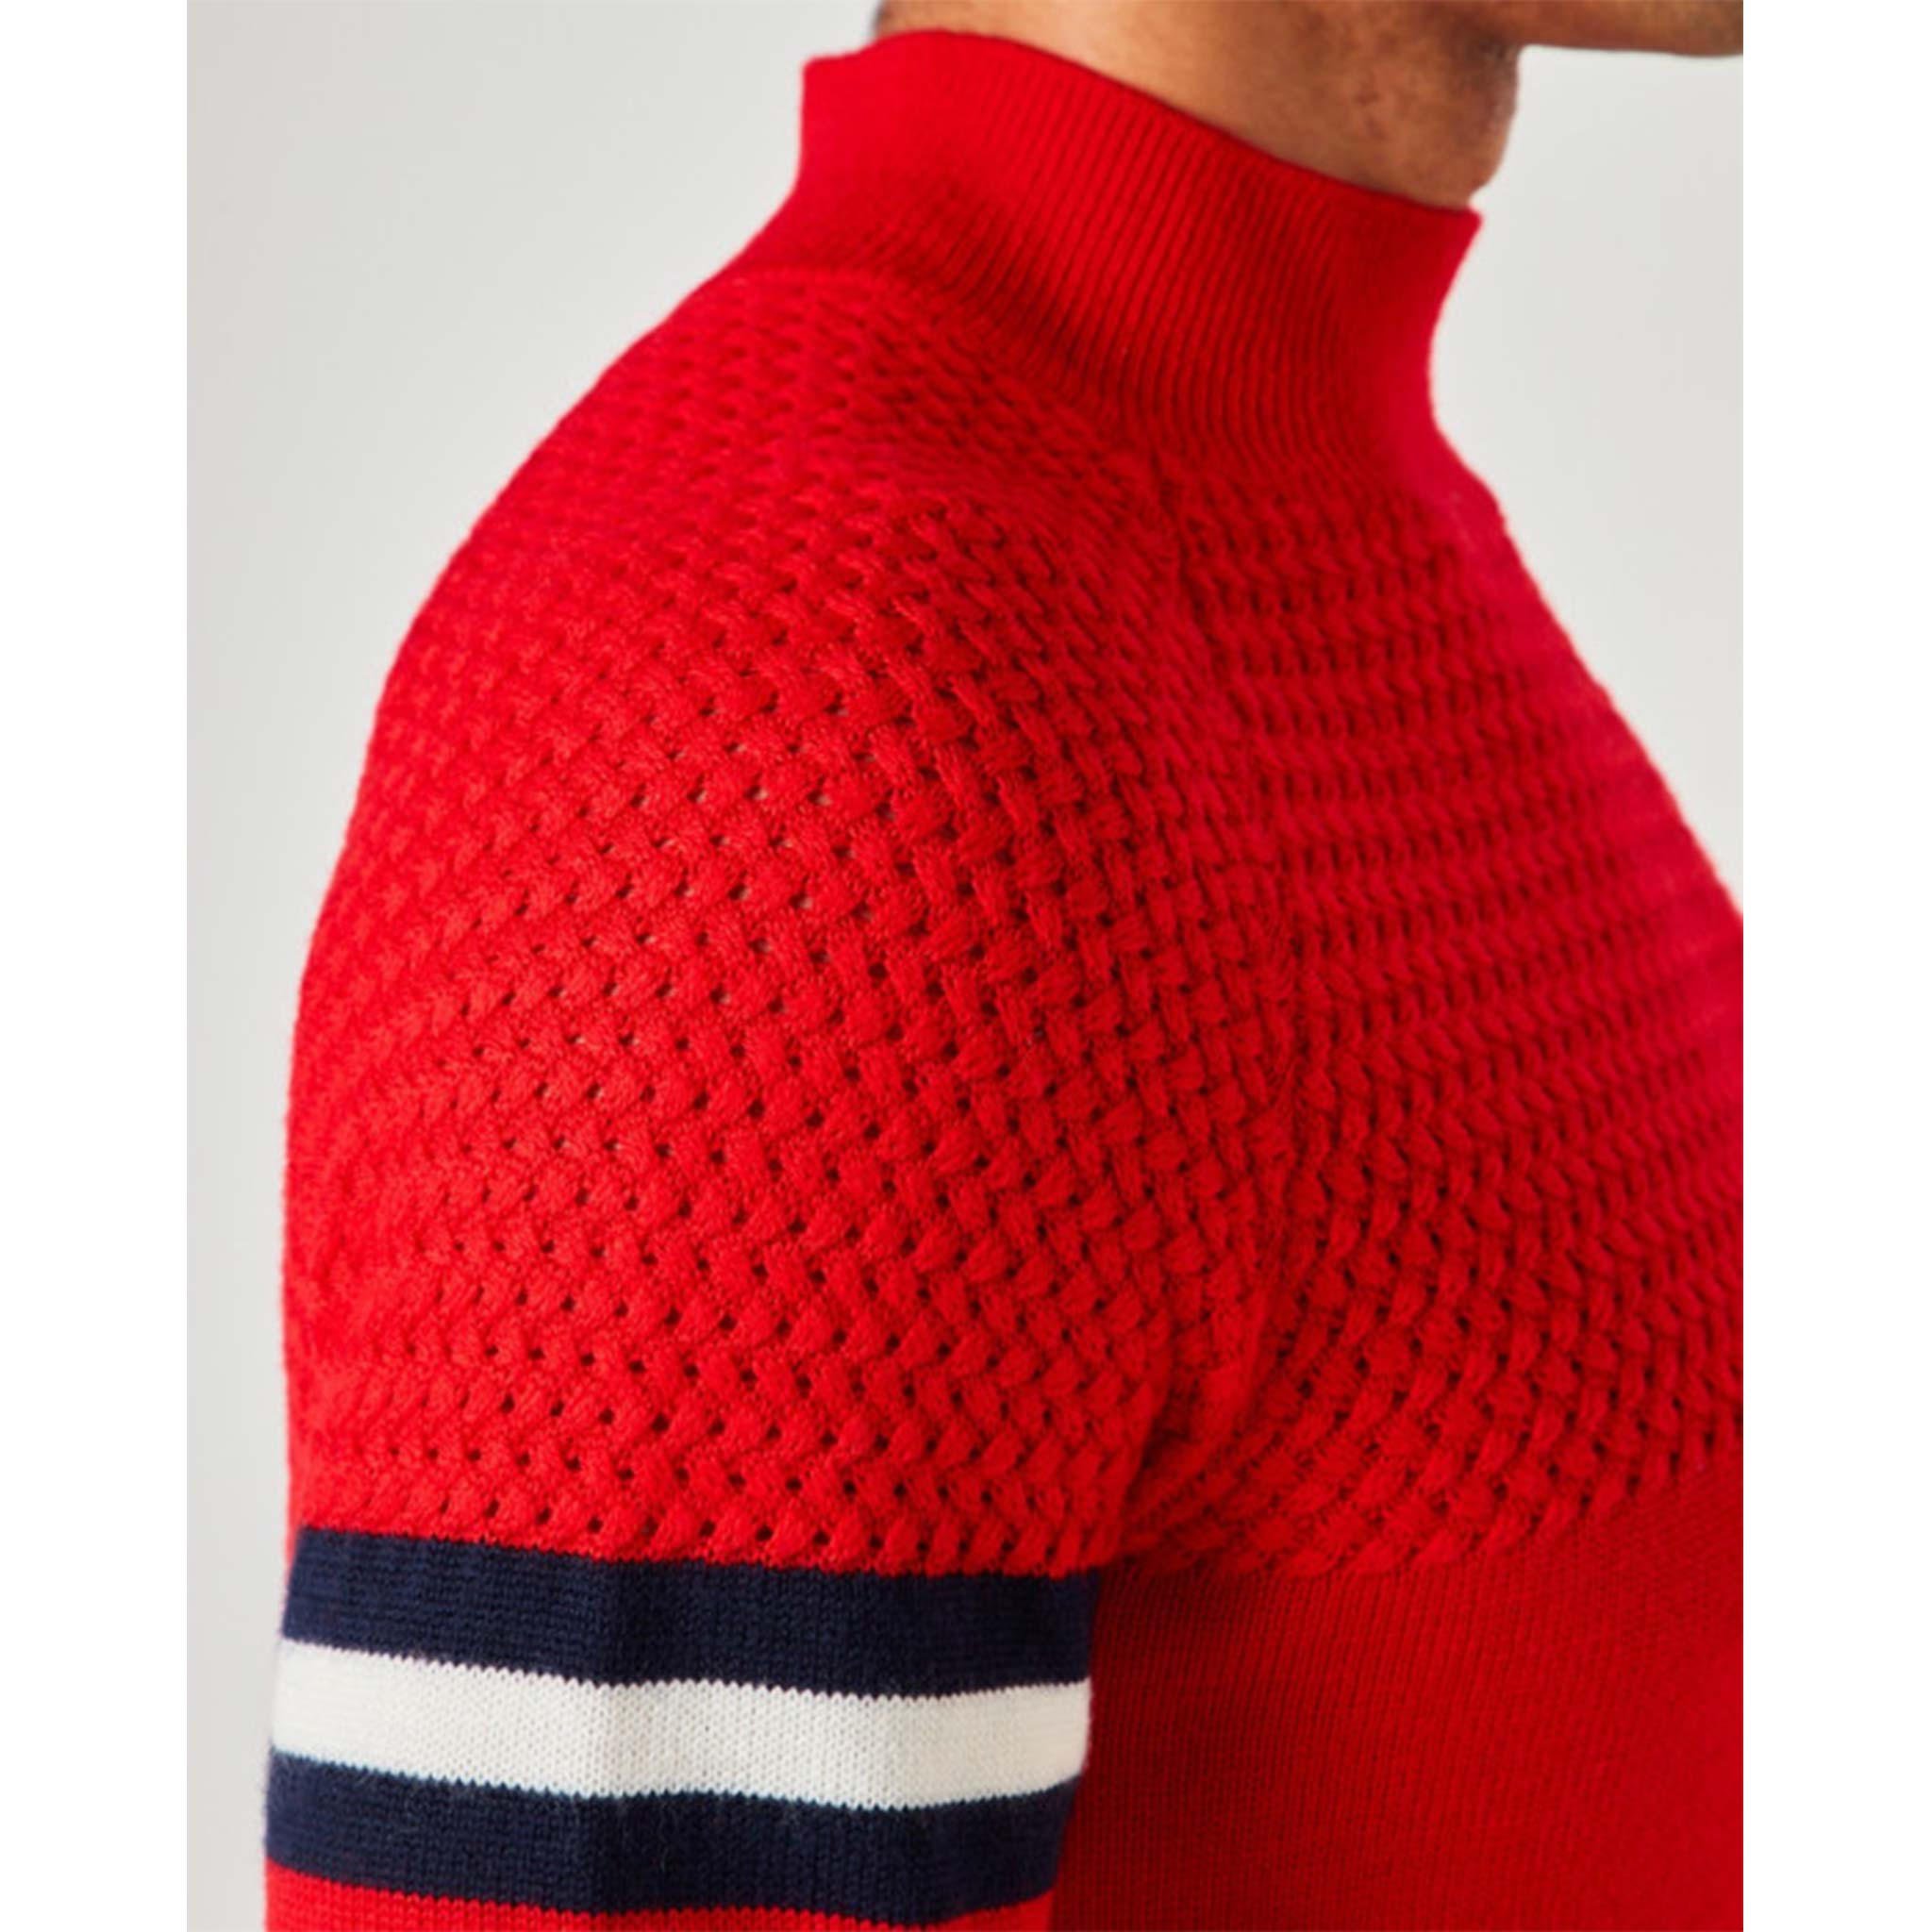 Chamonix Turtle Neck Sweater